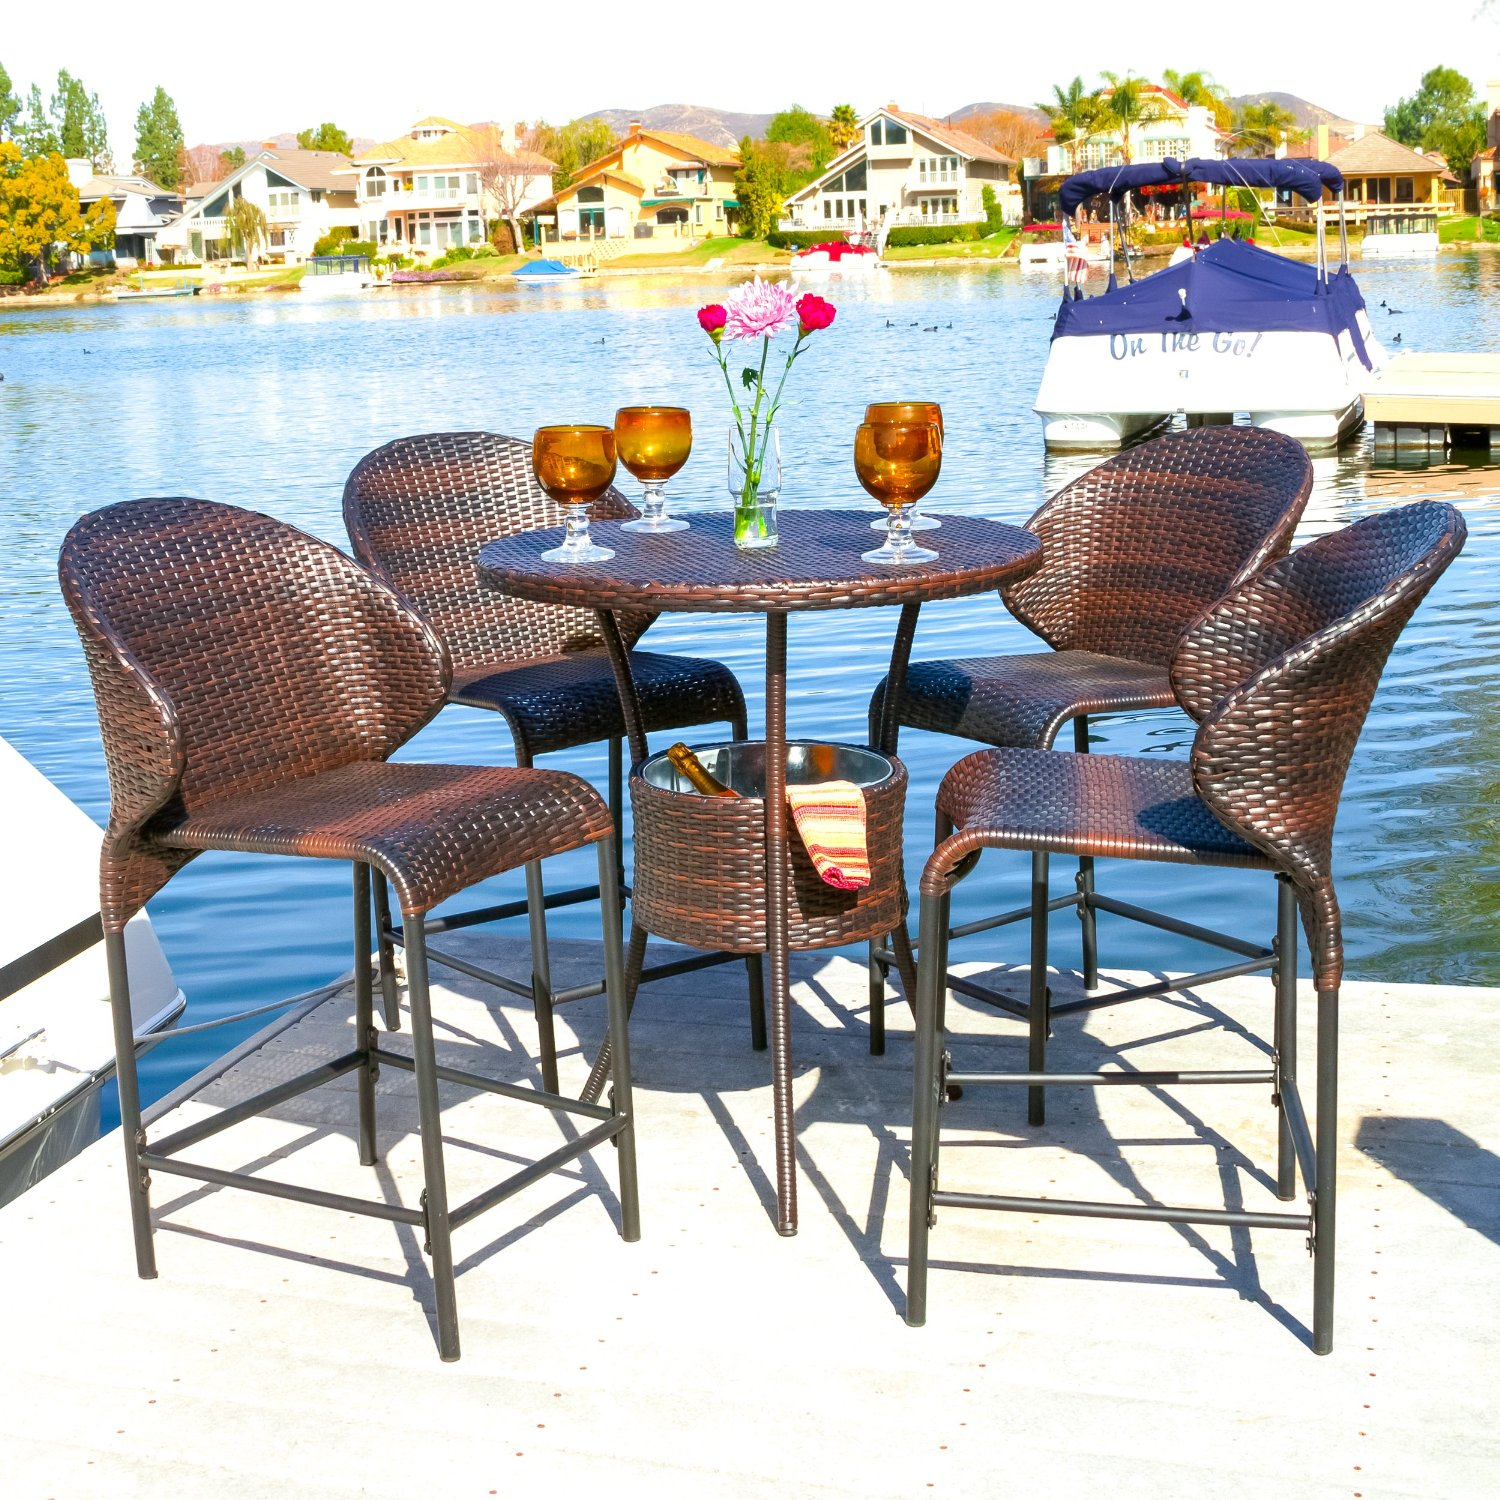 bennett bristo set & 3 Bar Height Patio Dining Sets to Enjoy - Outdoor Bar